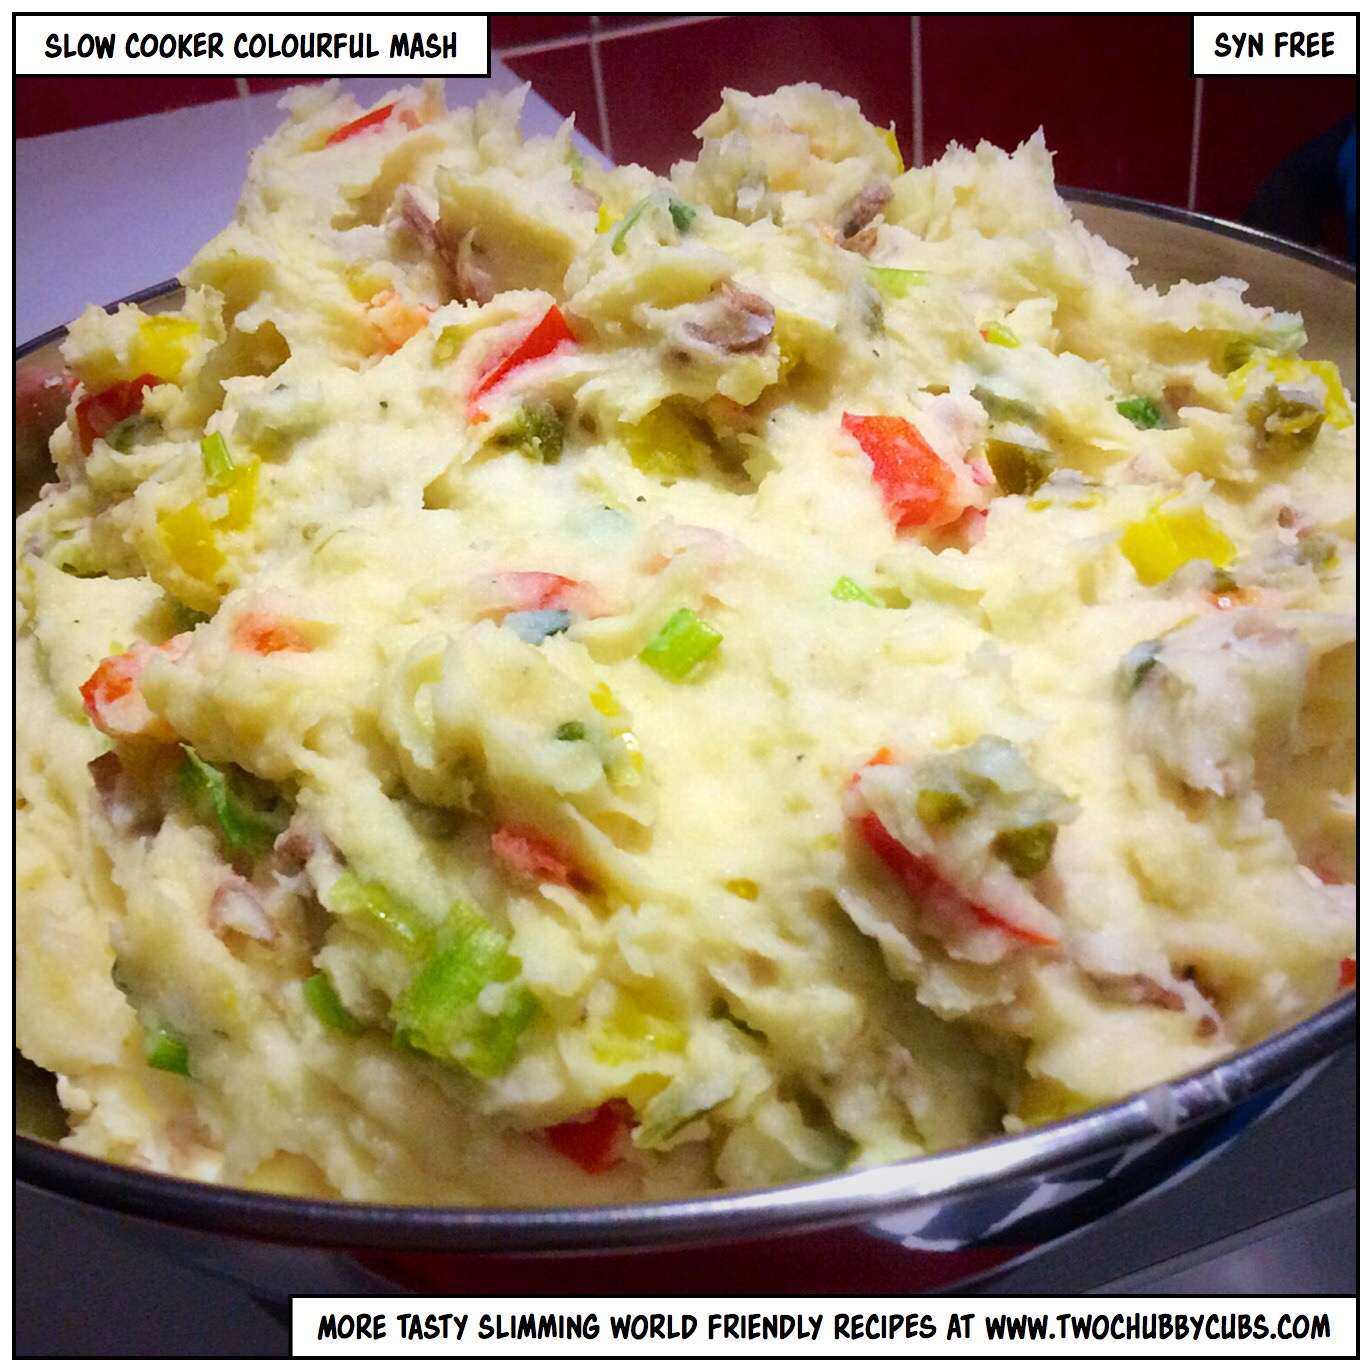 Slow cooker colourful mash Slimming world meals for one person